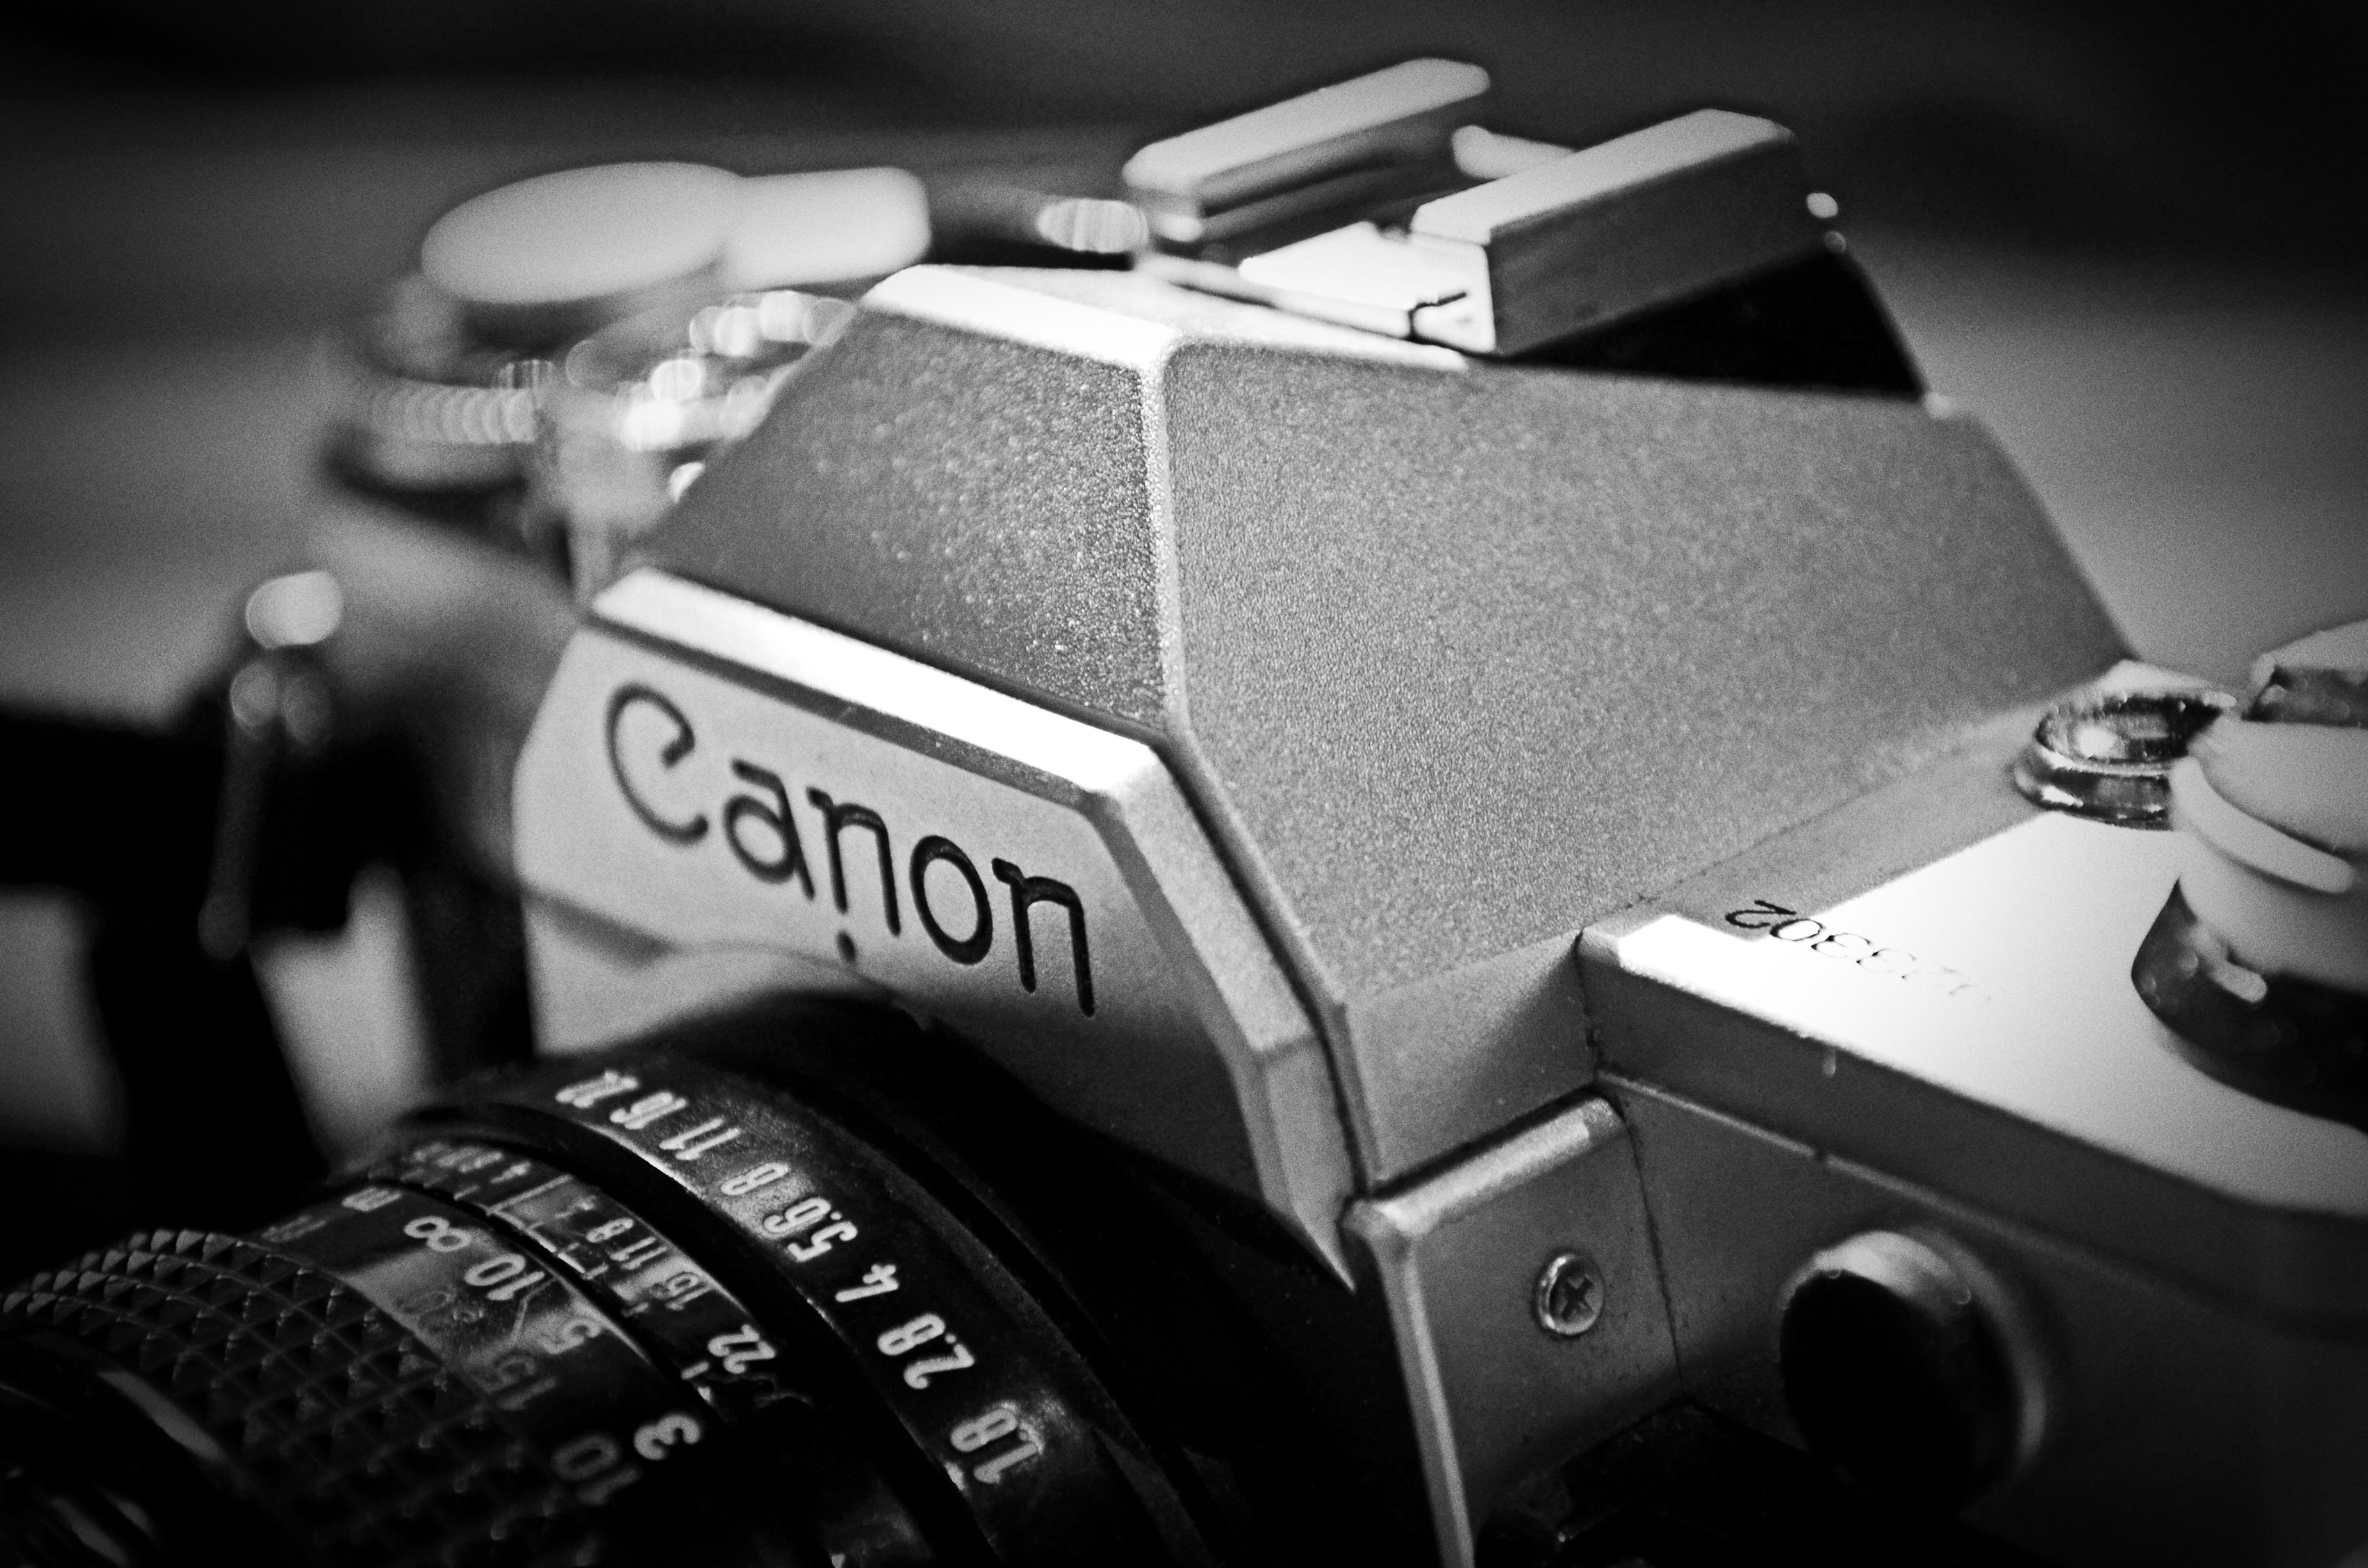 Canon camera in black and white